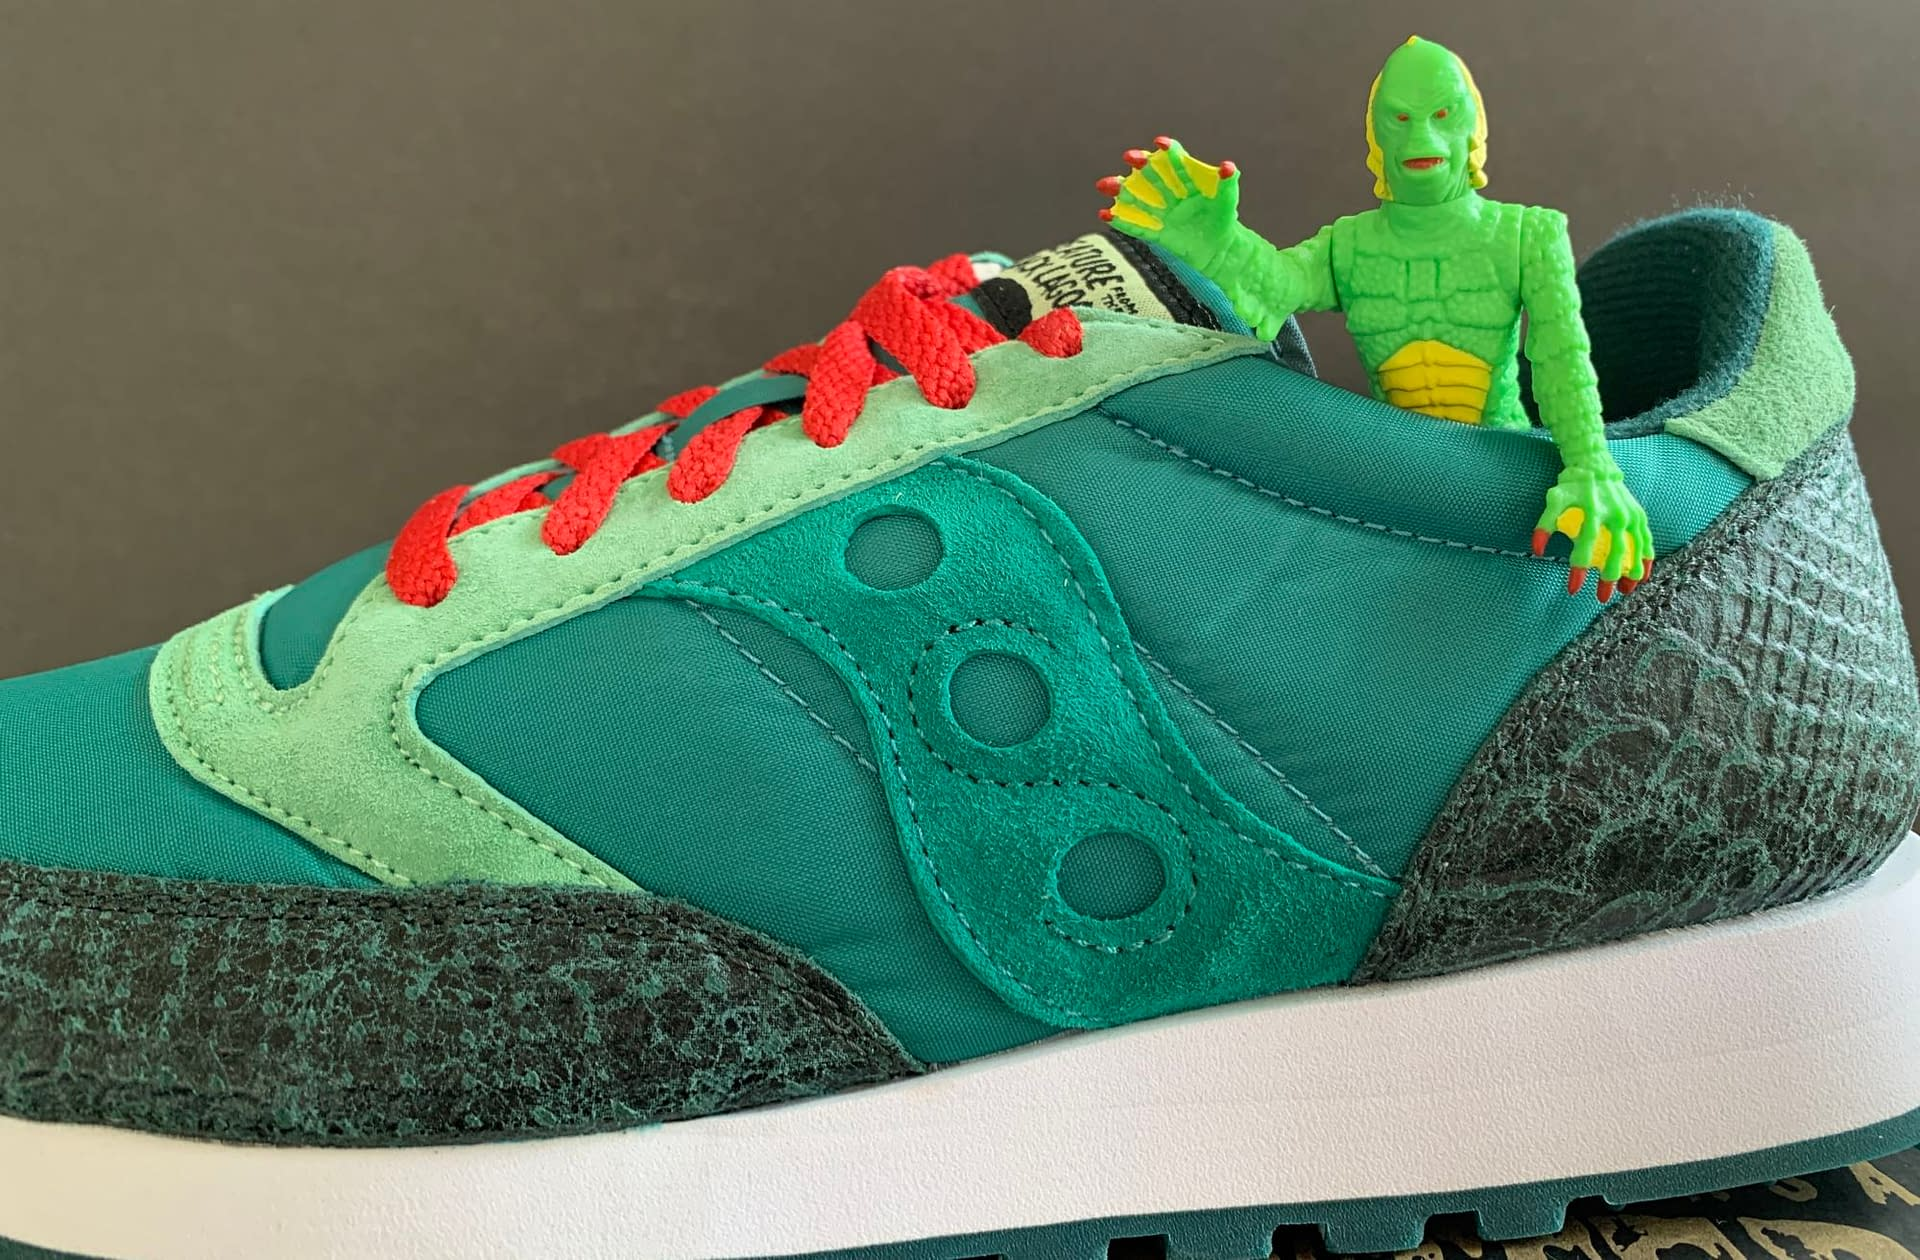 We Get Spooky With Super7 & Saucony's New Universal Monsters Shoes